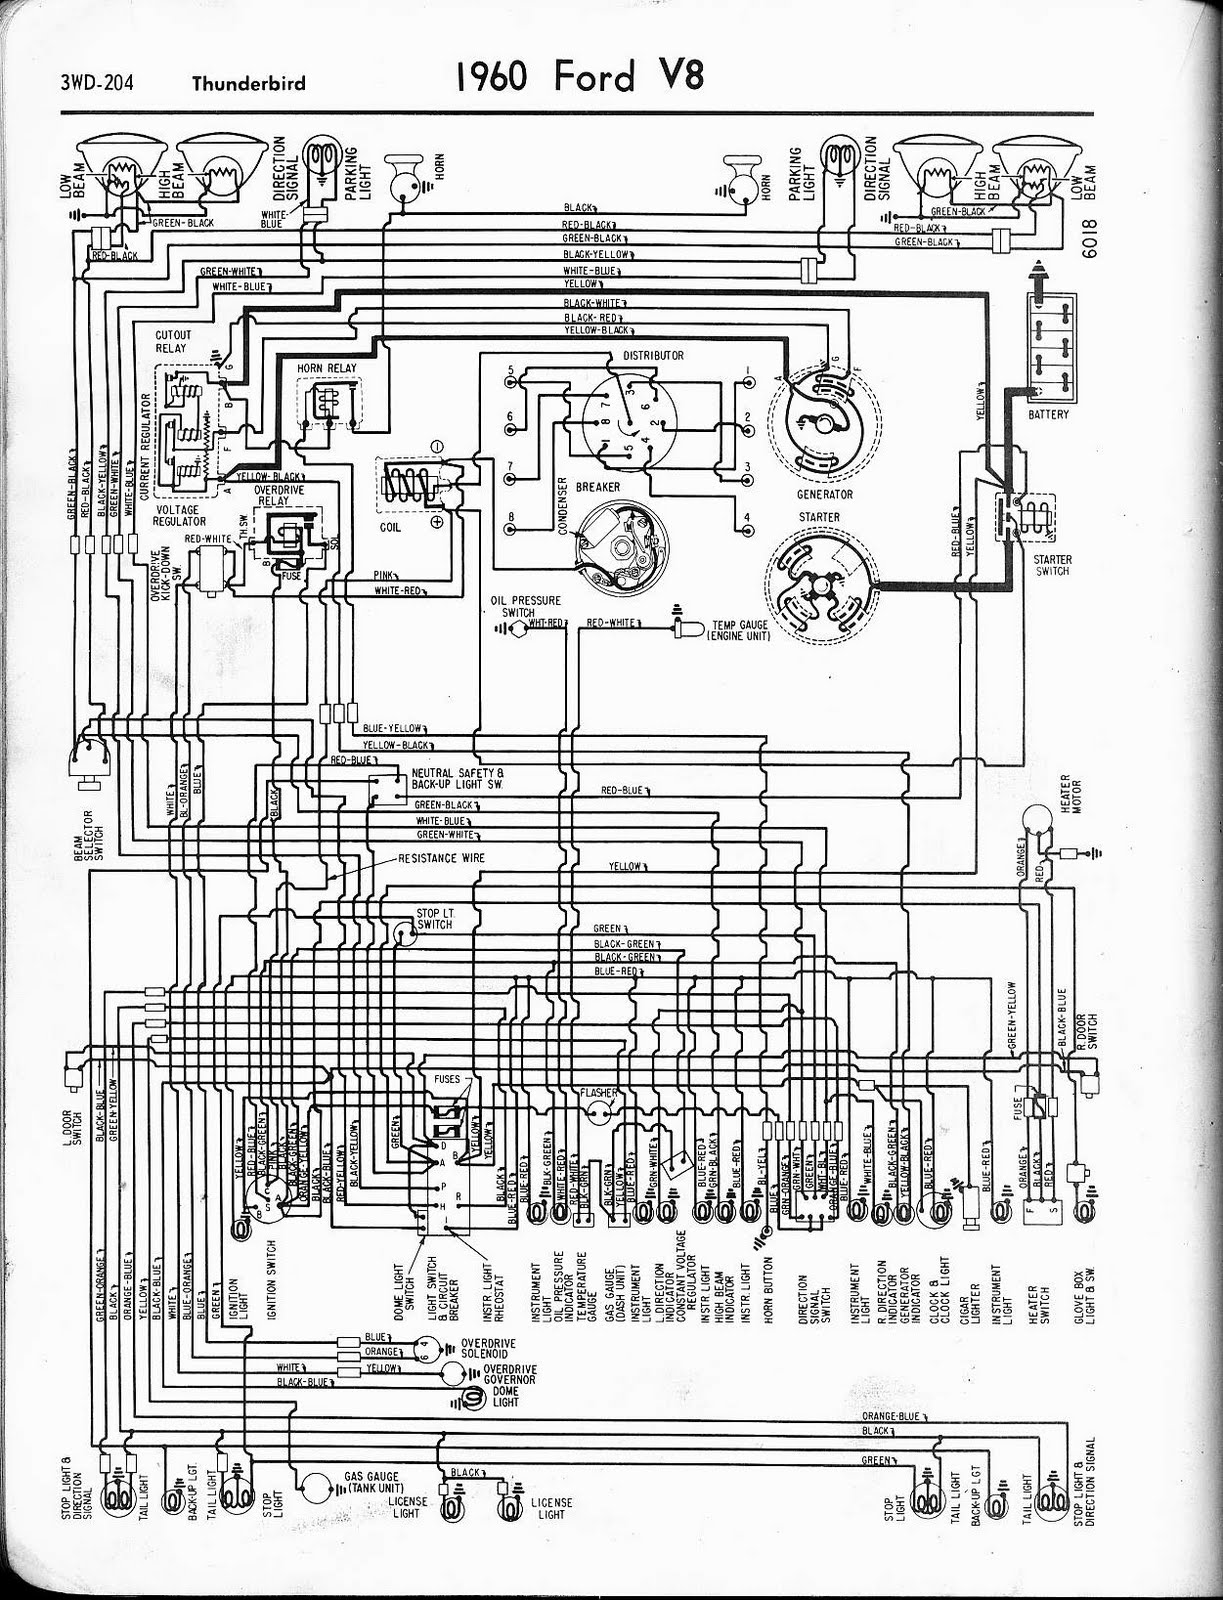 Free Auto Wiring Diagram: 1960 Ford V8 Thunderbird Wiring